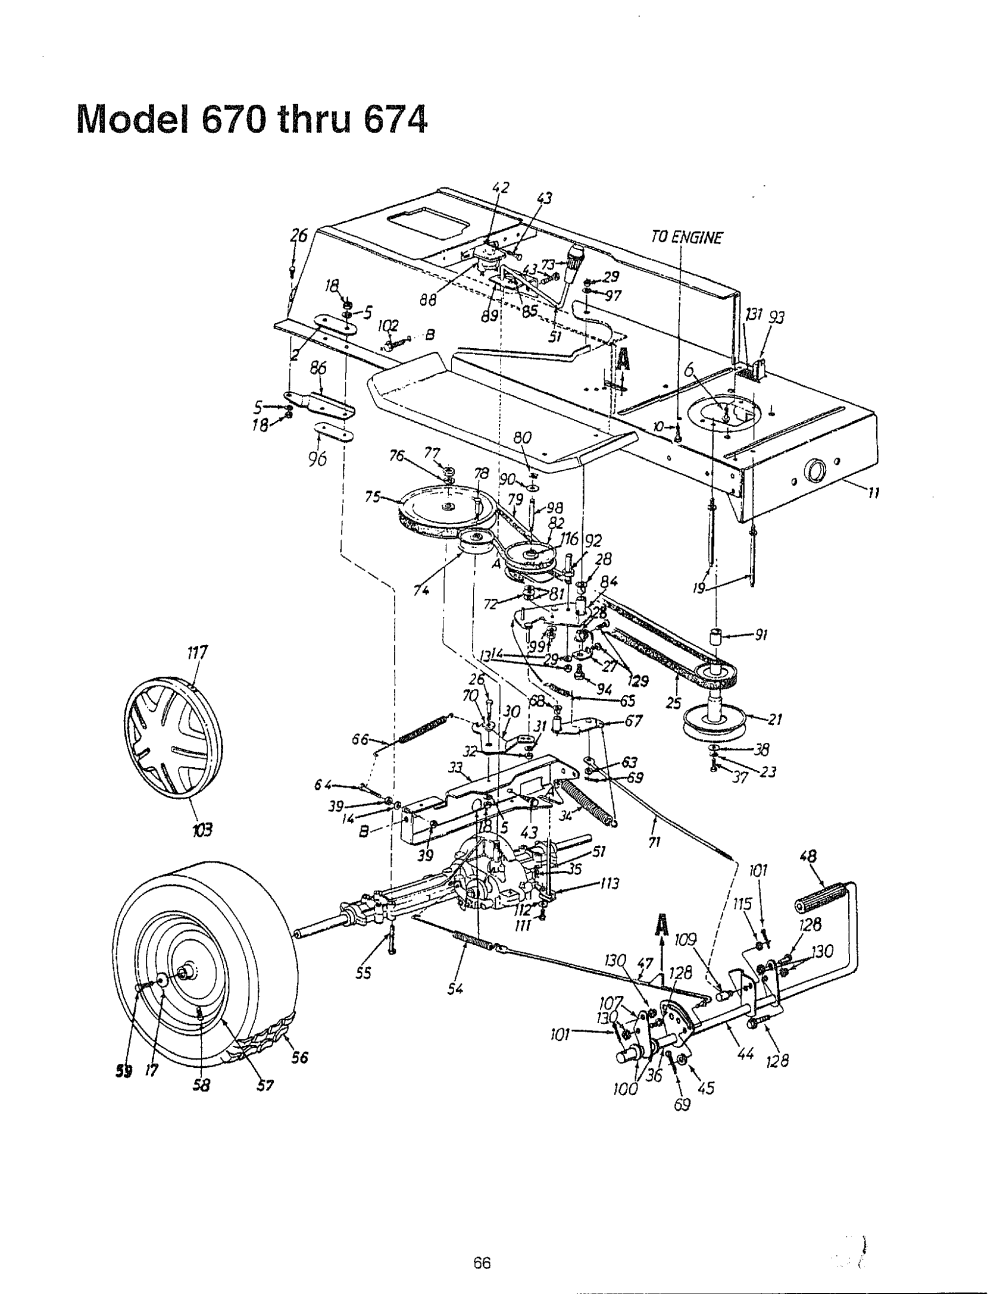 medium resolution of mtd lawn mower parts diagram wiring diagram mega mtd lawn mower diagram looking for mtd model